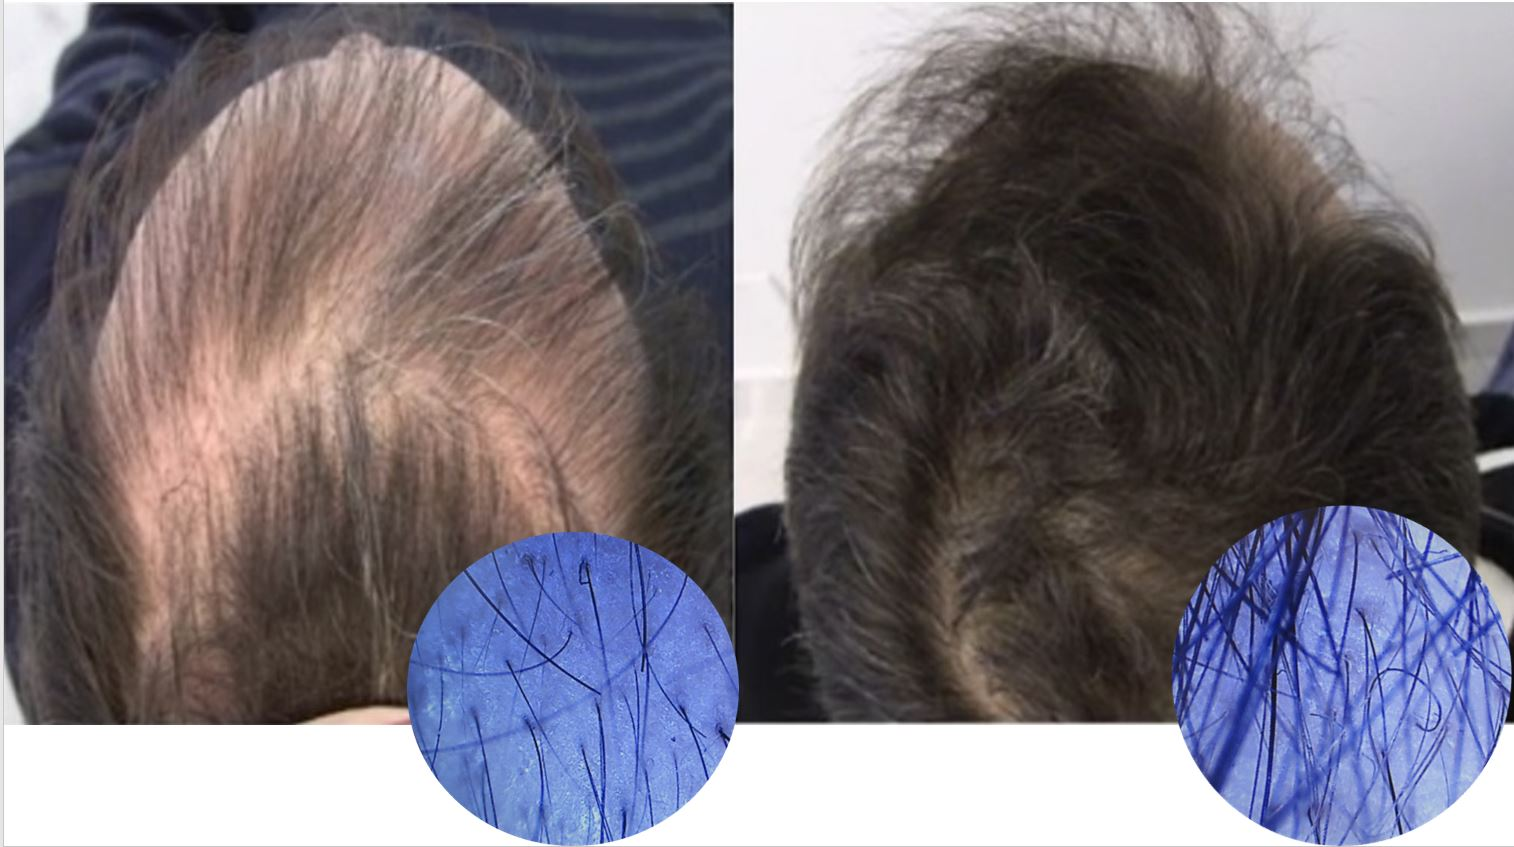 21 Months of Stop and regrow treatment for hair loss